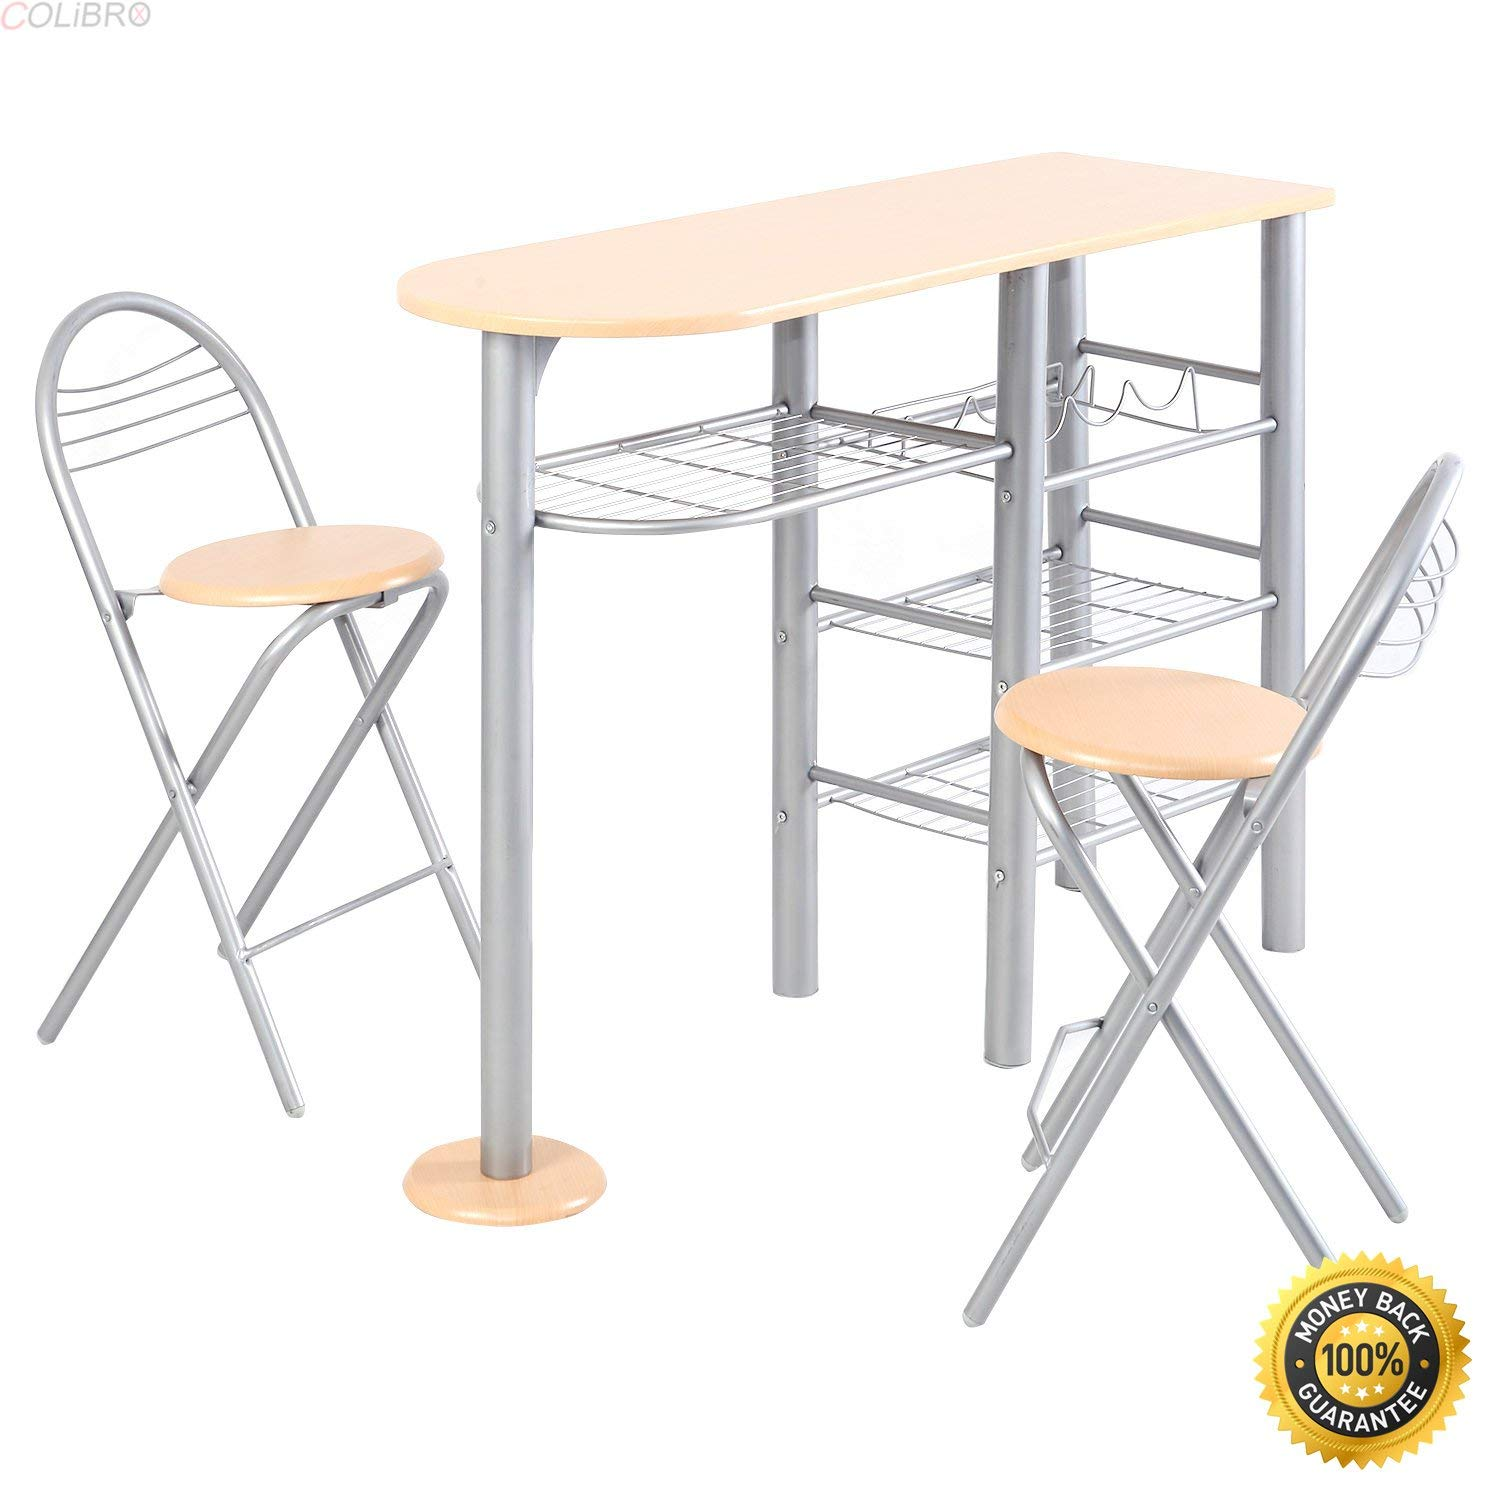 COLIBROX--Pub Dining Set Counter Height 3 Piece Table and Chairs Set Breakfast Kitchen,best bar tool set,bar set gift,stylish and functional 3-piece counter height bar set.